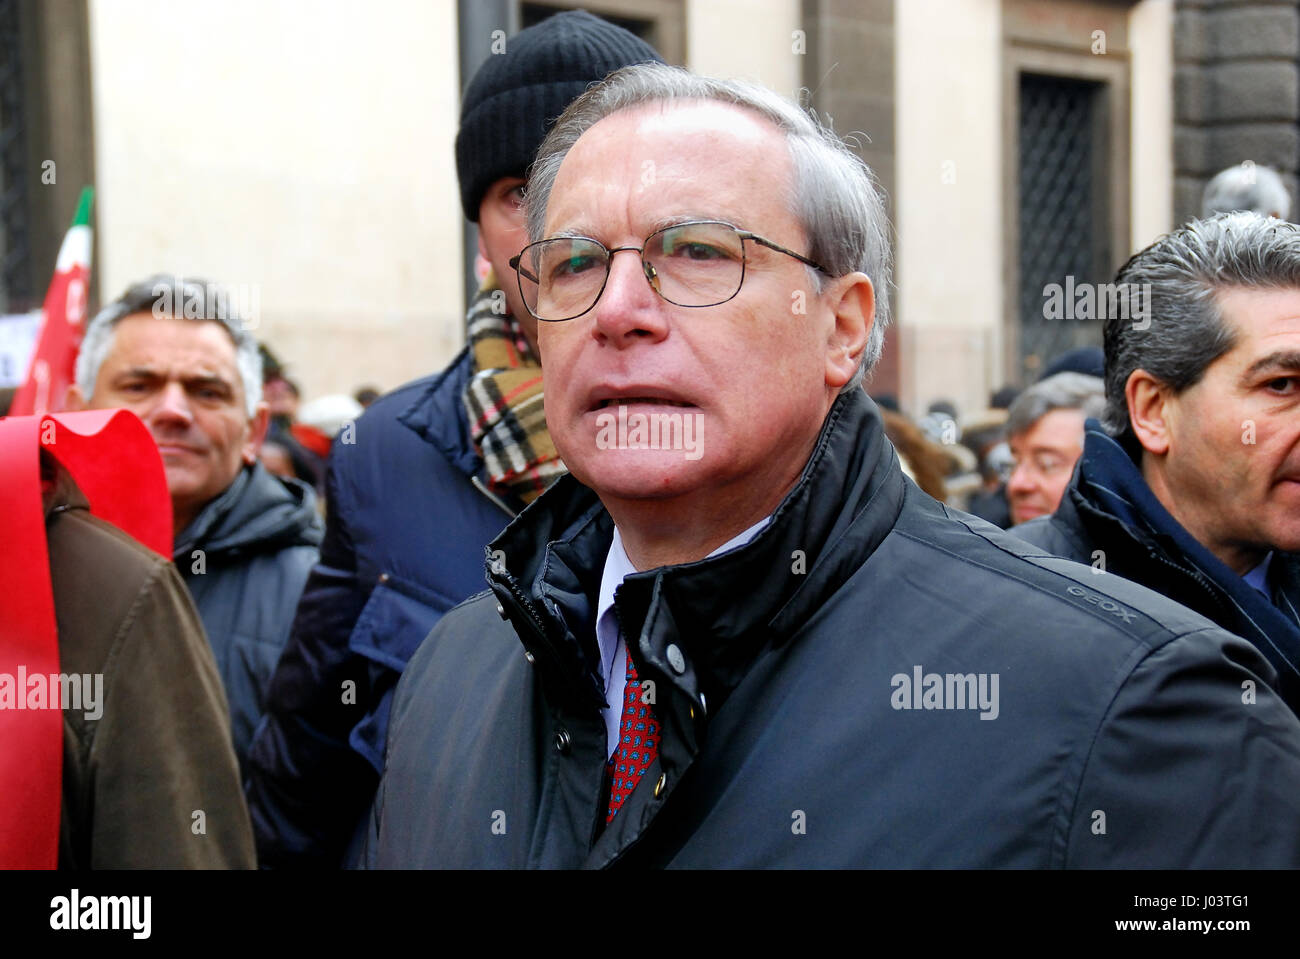 Guglielmo Epifani (born 24 March 1950) is an Italian trade unionist and politician. From 2002 to 2010 he was the - Stock Image